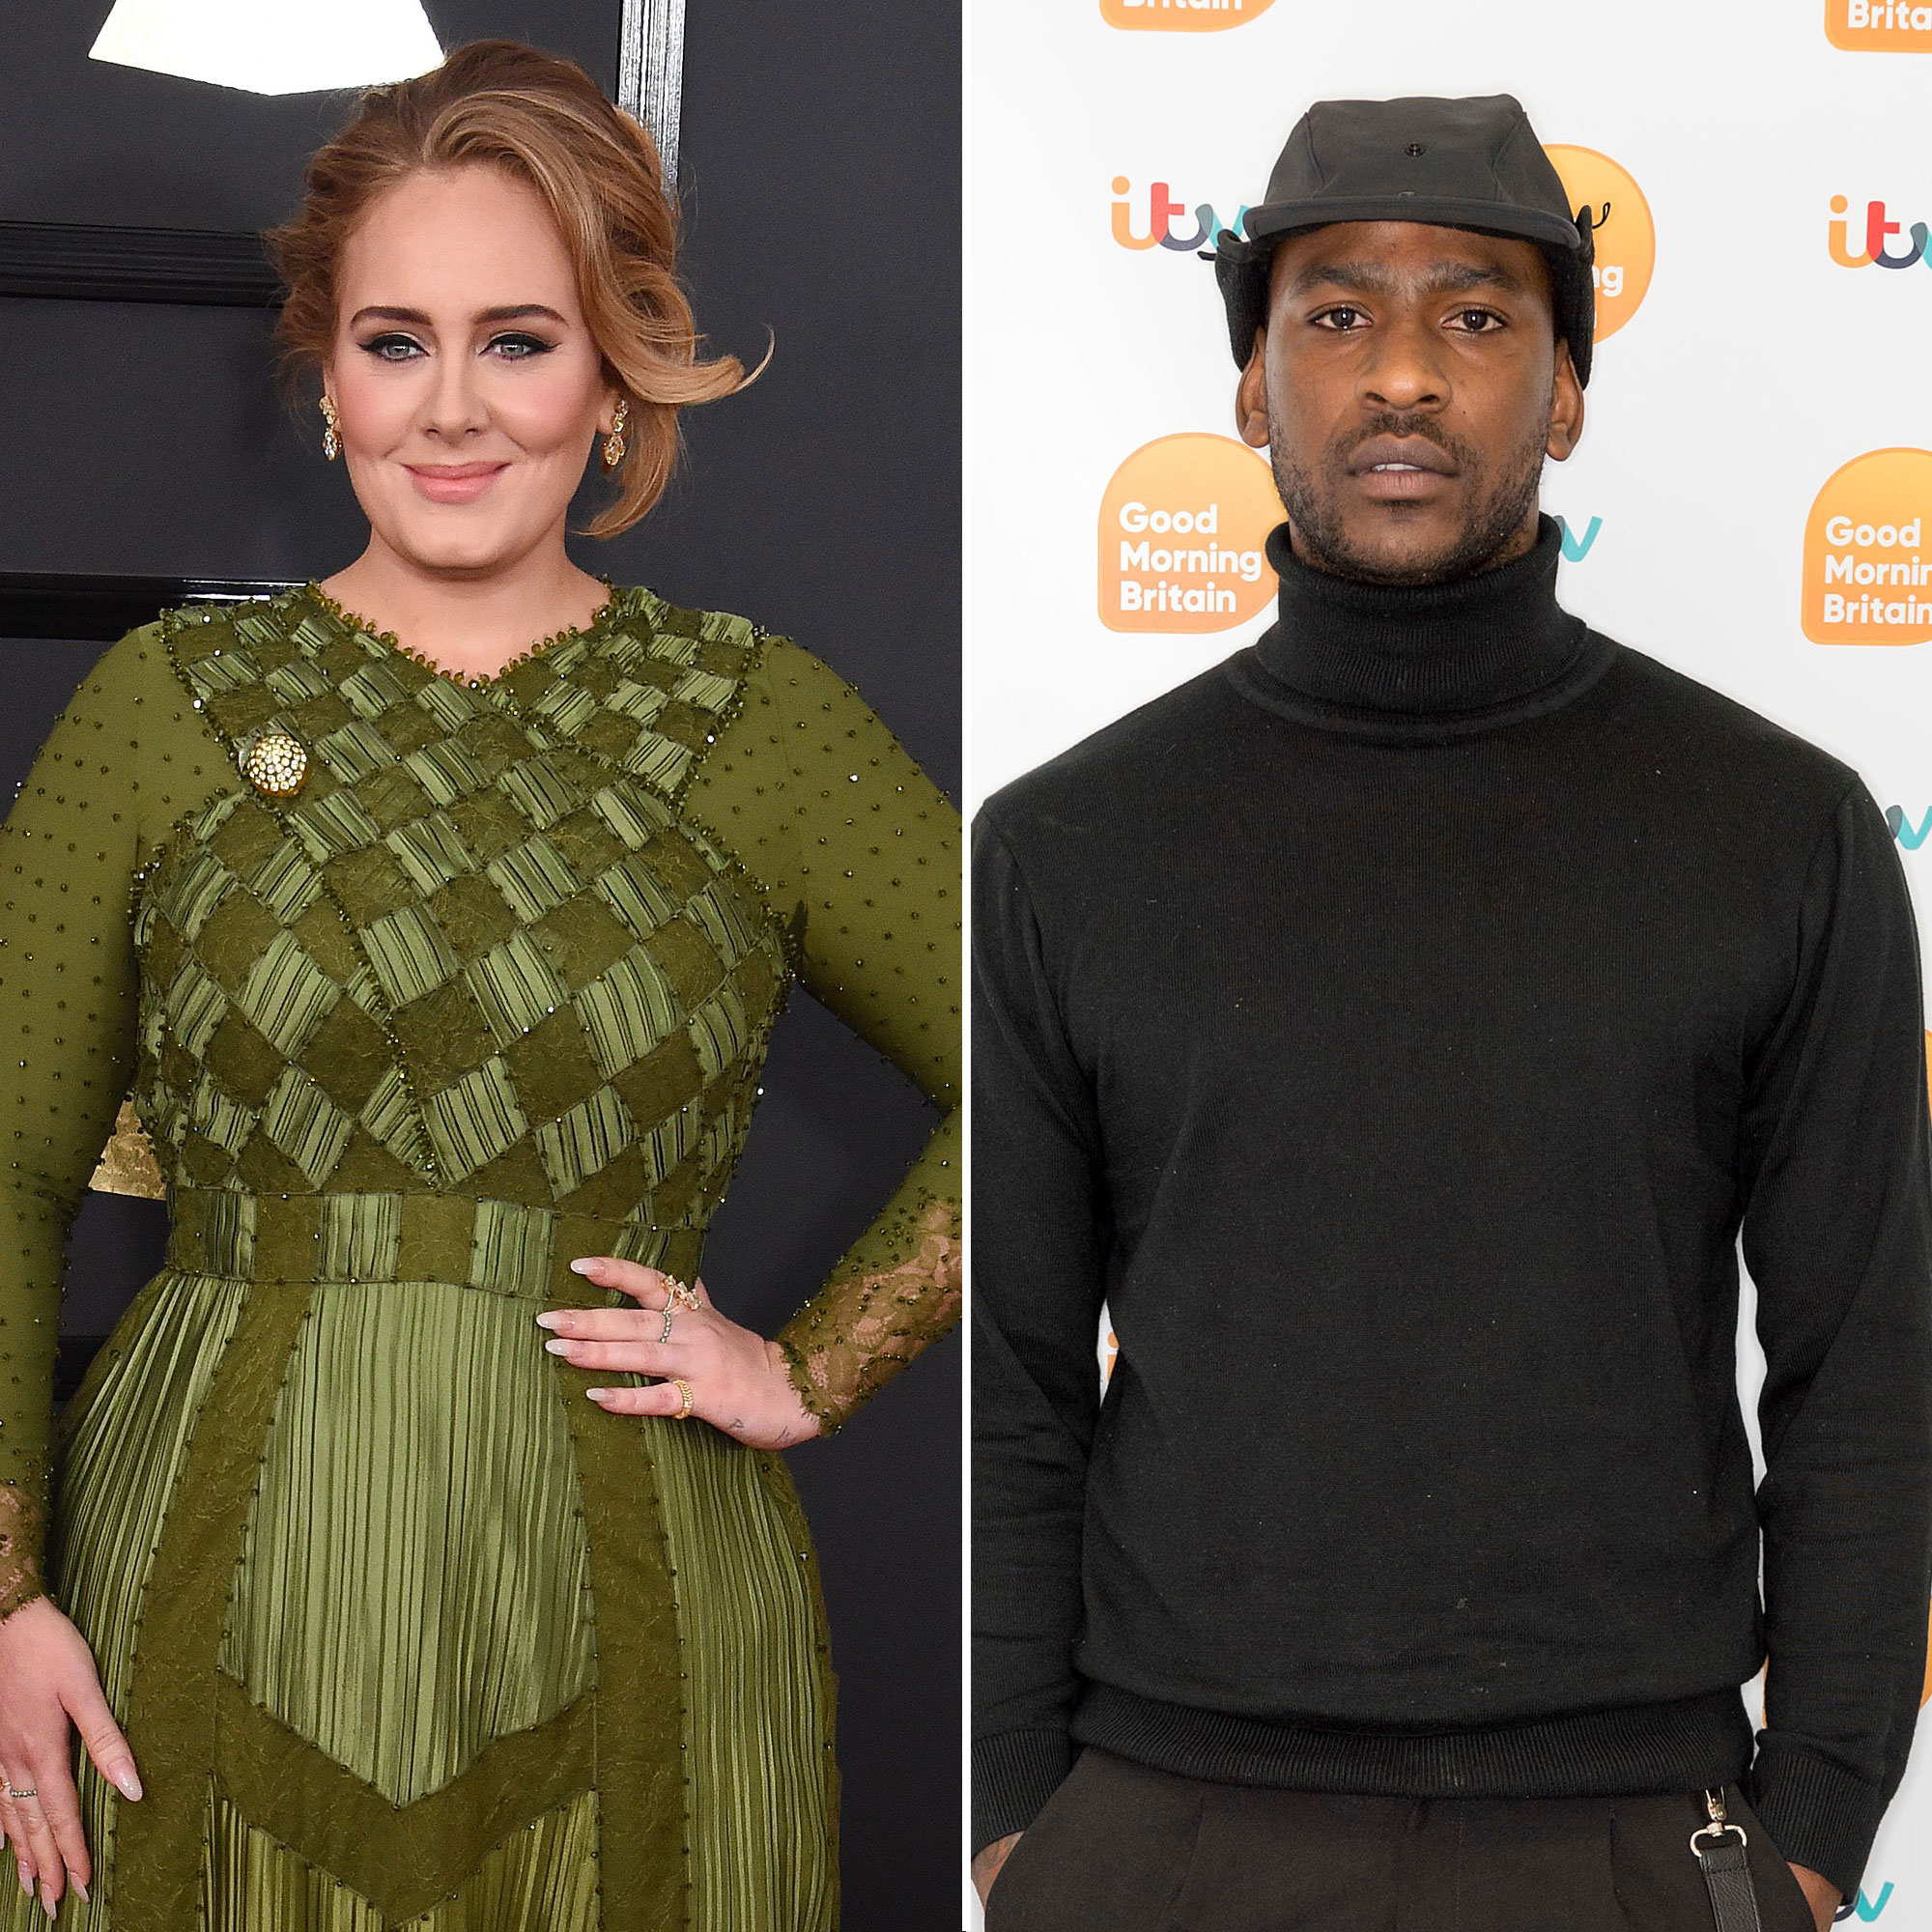 Adele And Skepta Spark Romance Rumors With Flirty Comments